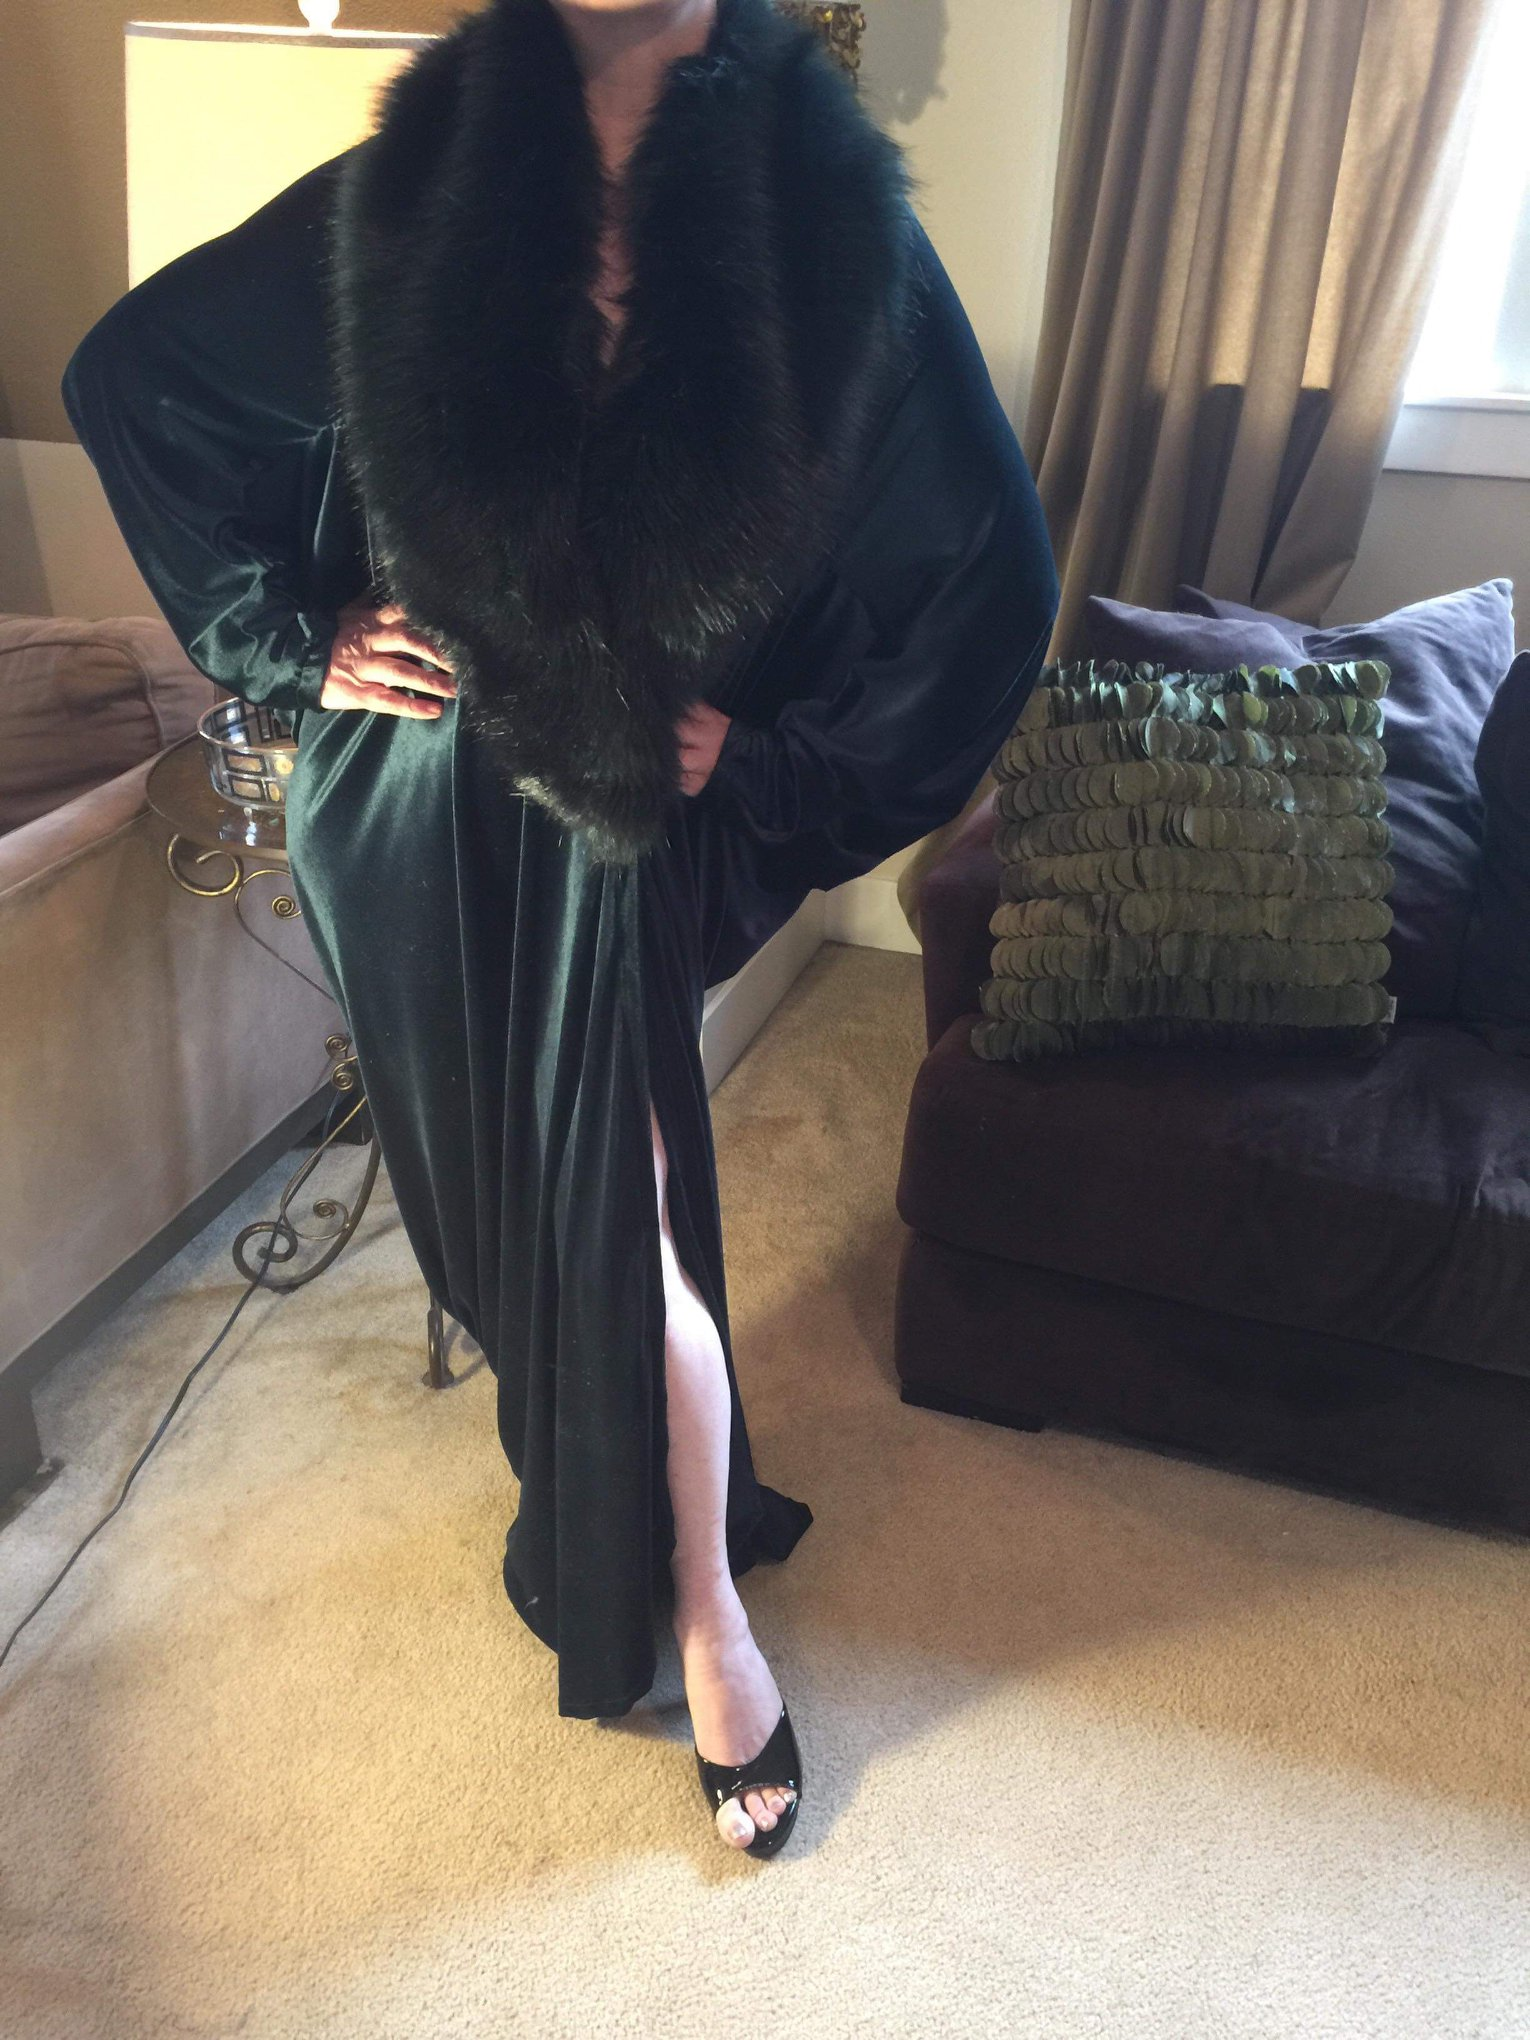 Velvet and (Faux) Fur 1920s style robe - When I saw these I almost DIED! I immediately began tracking down the woman that's making them, cause I didn't know her yet, but I KNEW I already loved her! (We're FB friends now!)